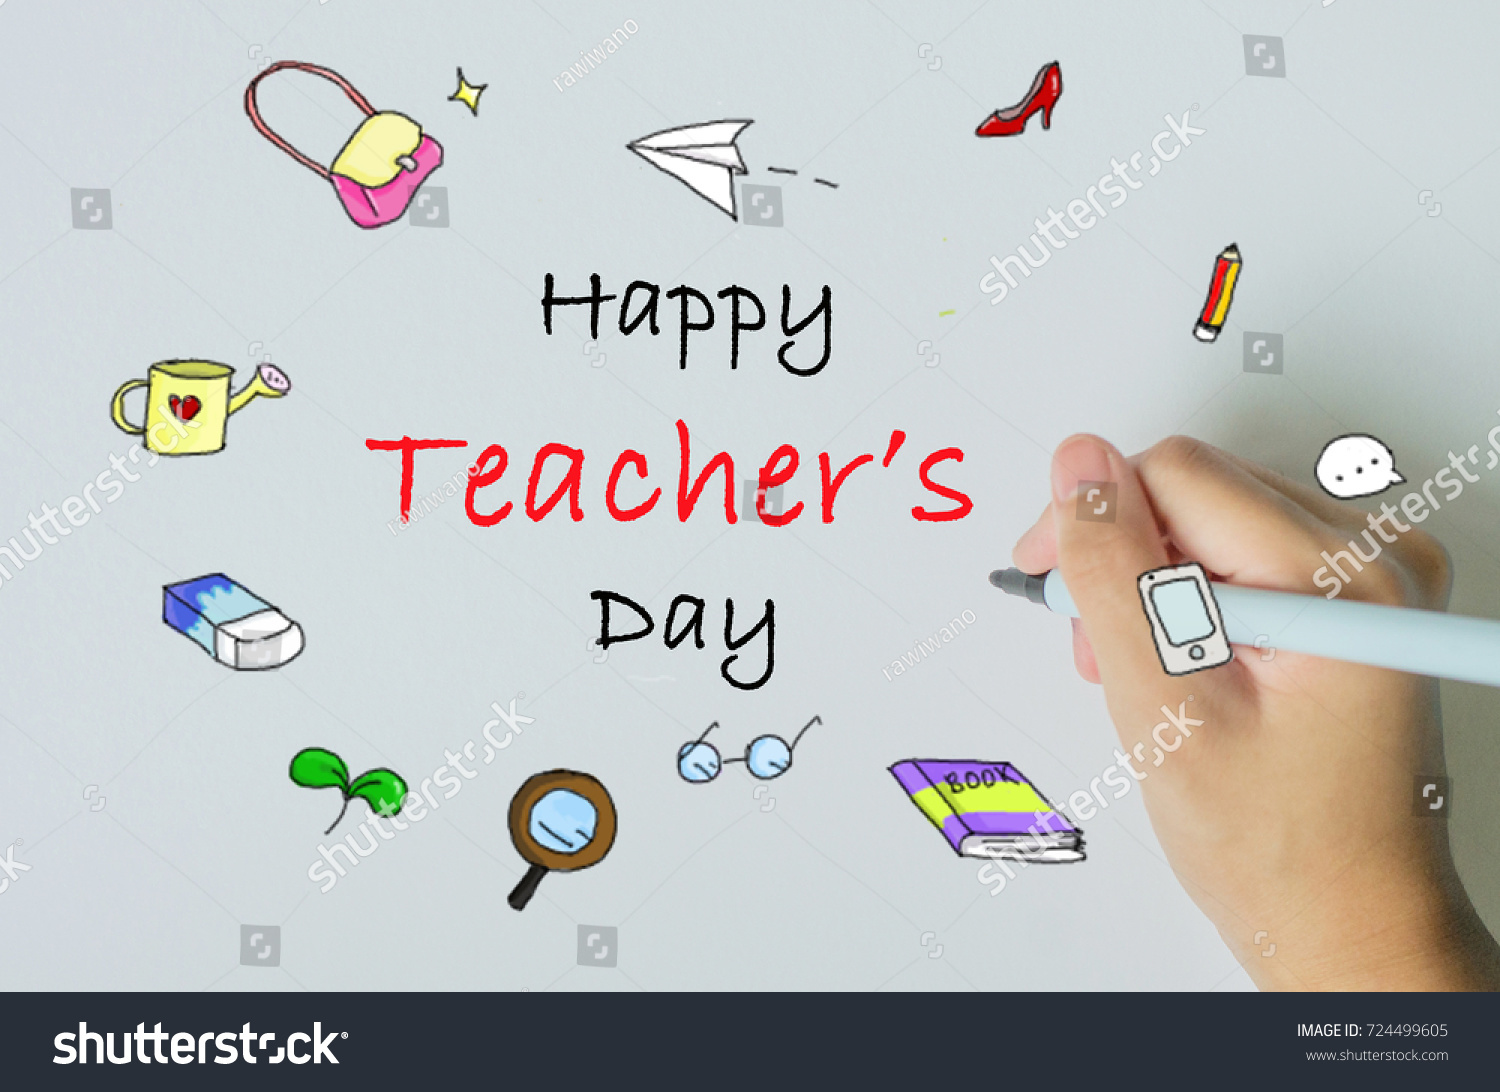 Happy Teachers Day Handmade Card Concept Stock Photo Edit Now